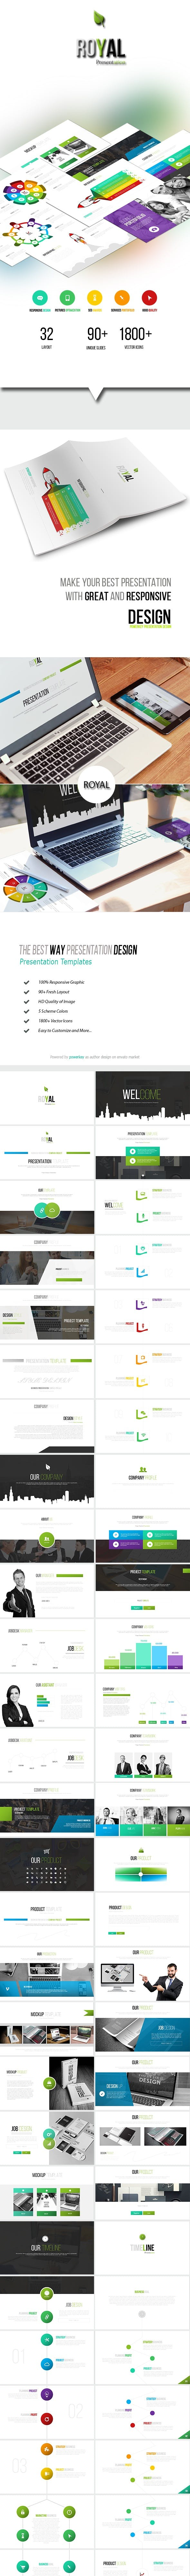 royal google slides pitch deck templates by powerkey graphicriver